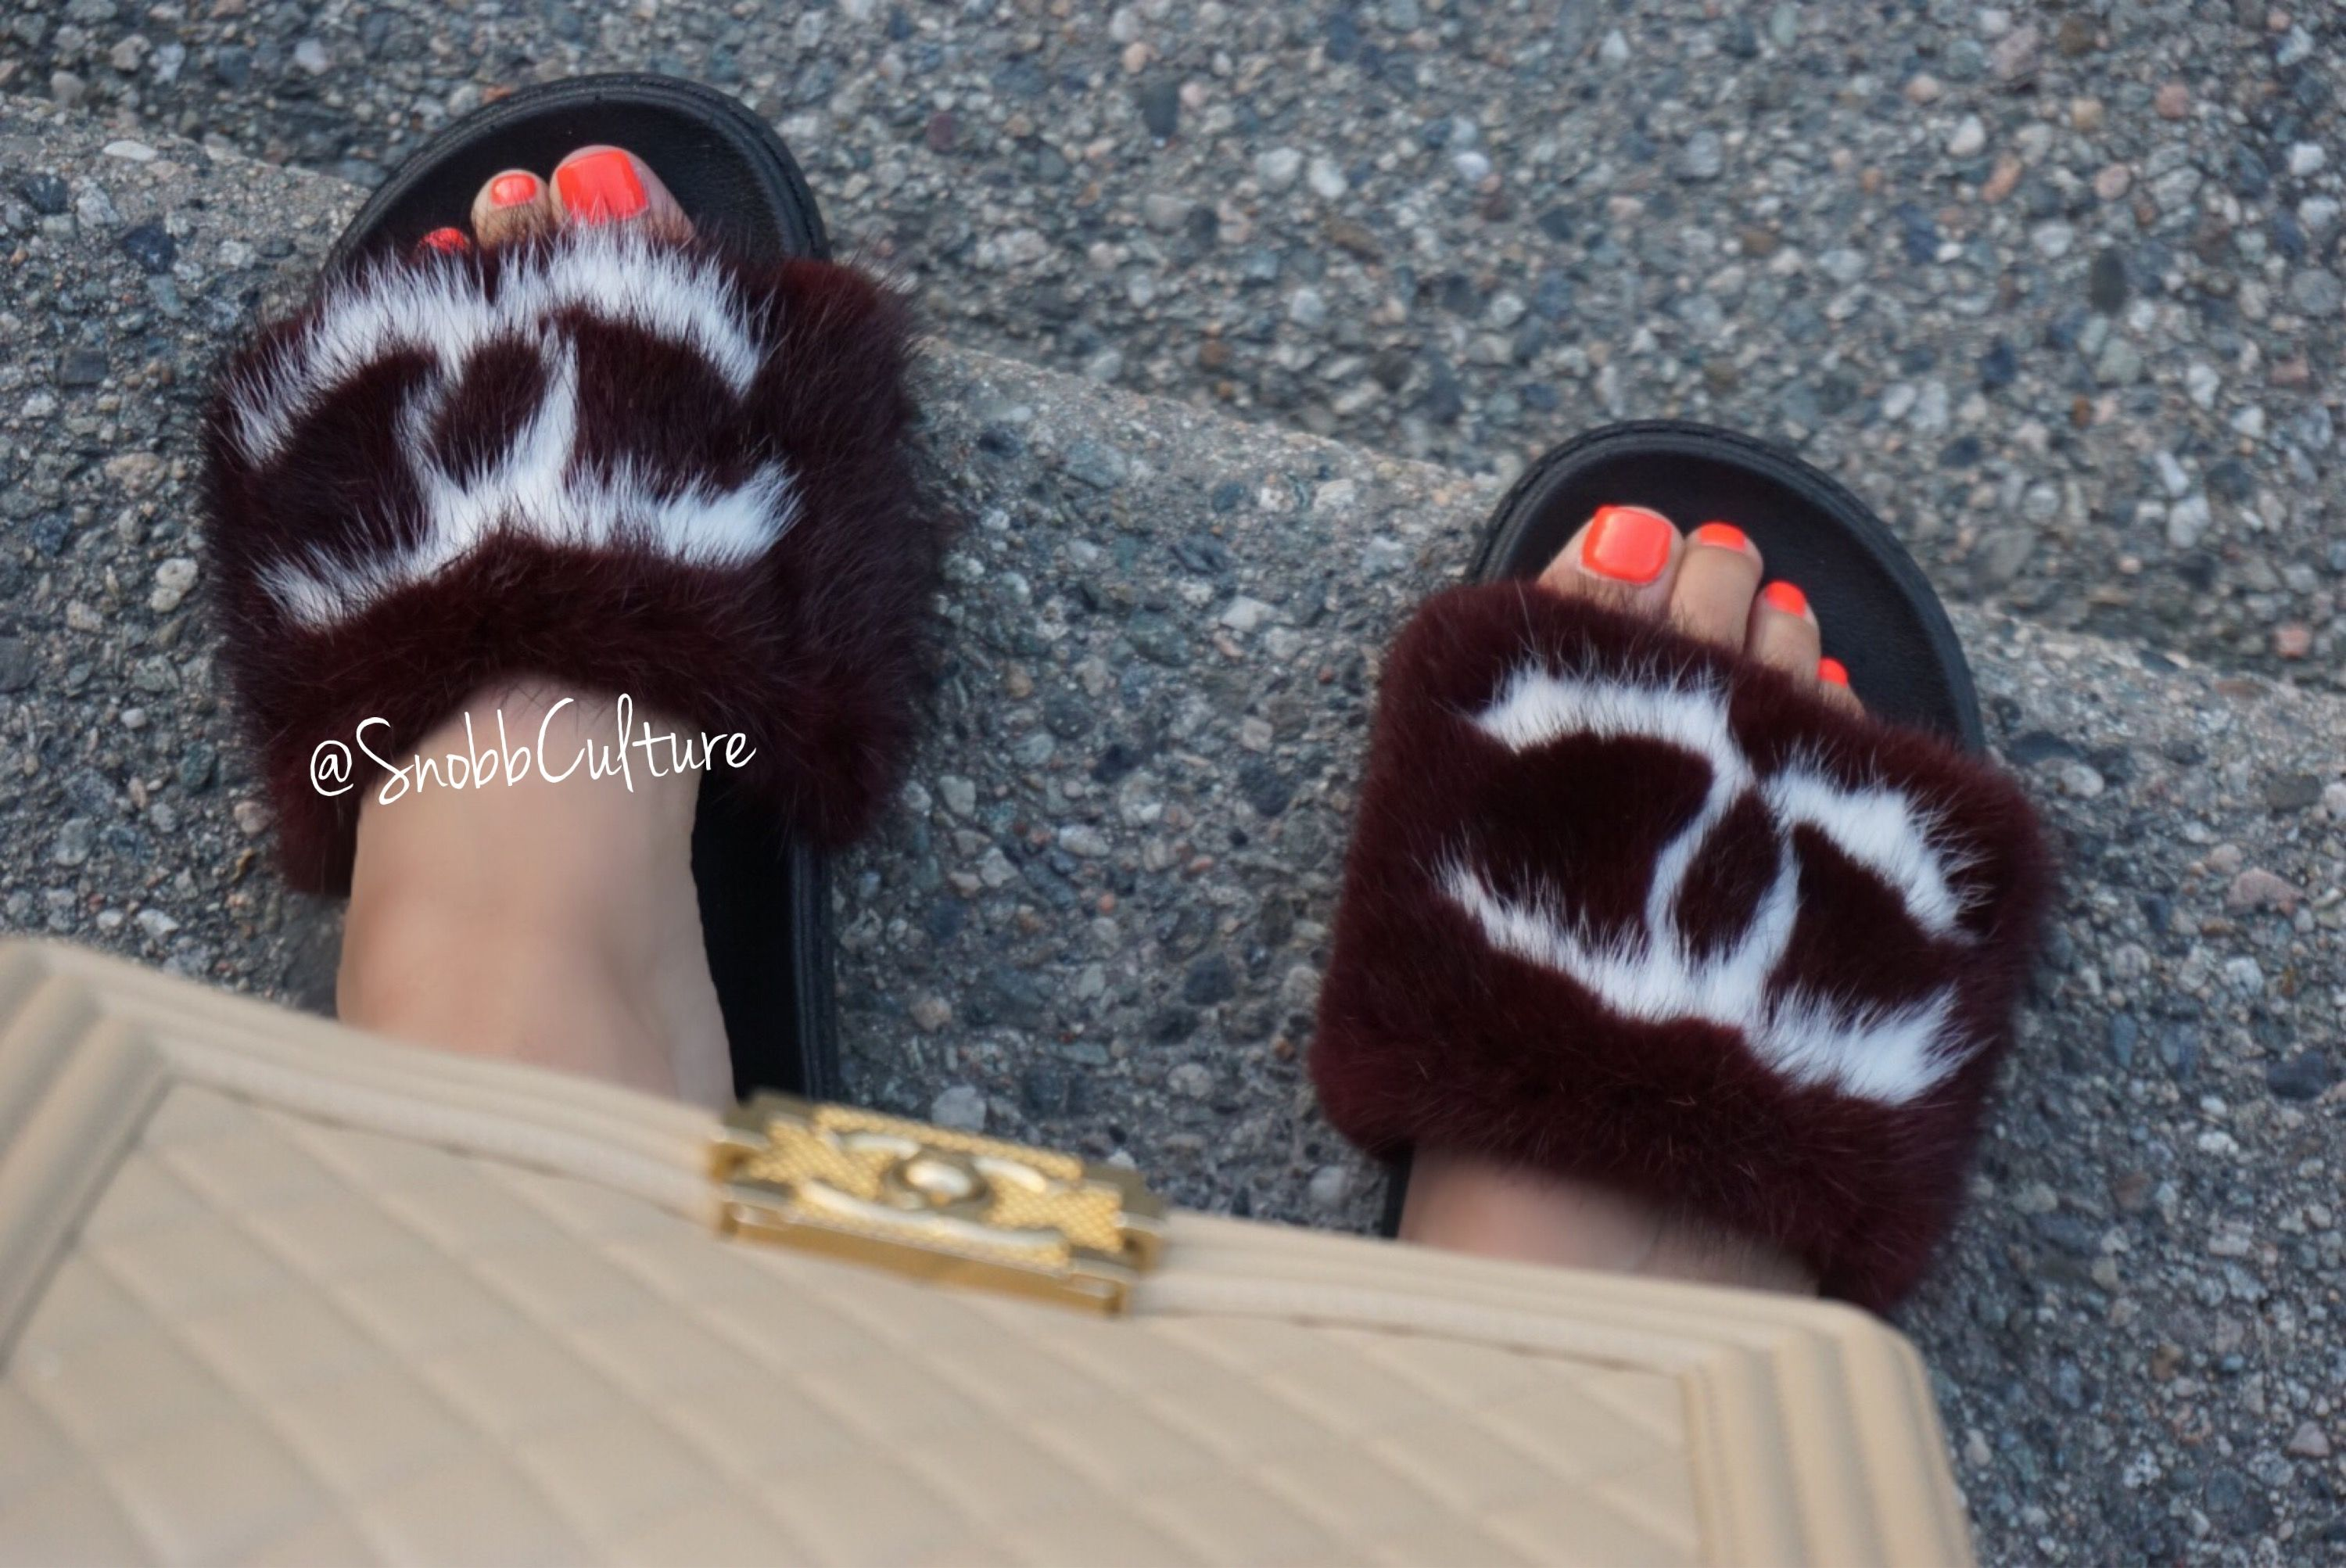 f6074a727fbc ✨Chanel Inspired Mink Slides✨ Available in sizes 6-11 💥 High Quality    Handmade 🌟 3 Different Colors 🌈 Made for indoor outdoor use 🌸 Shop Now  at www.